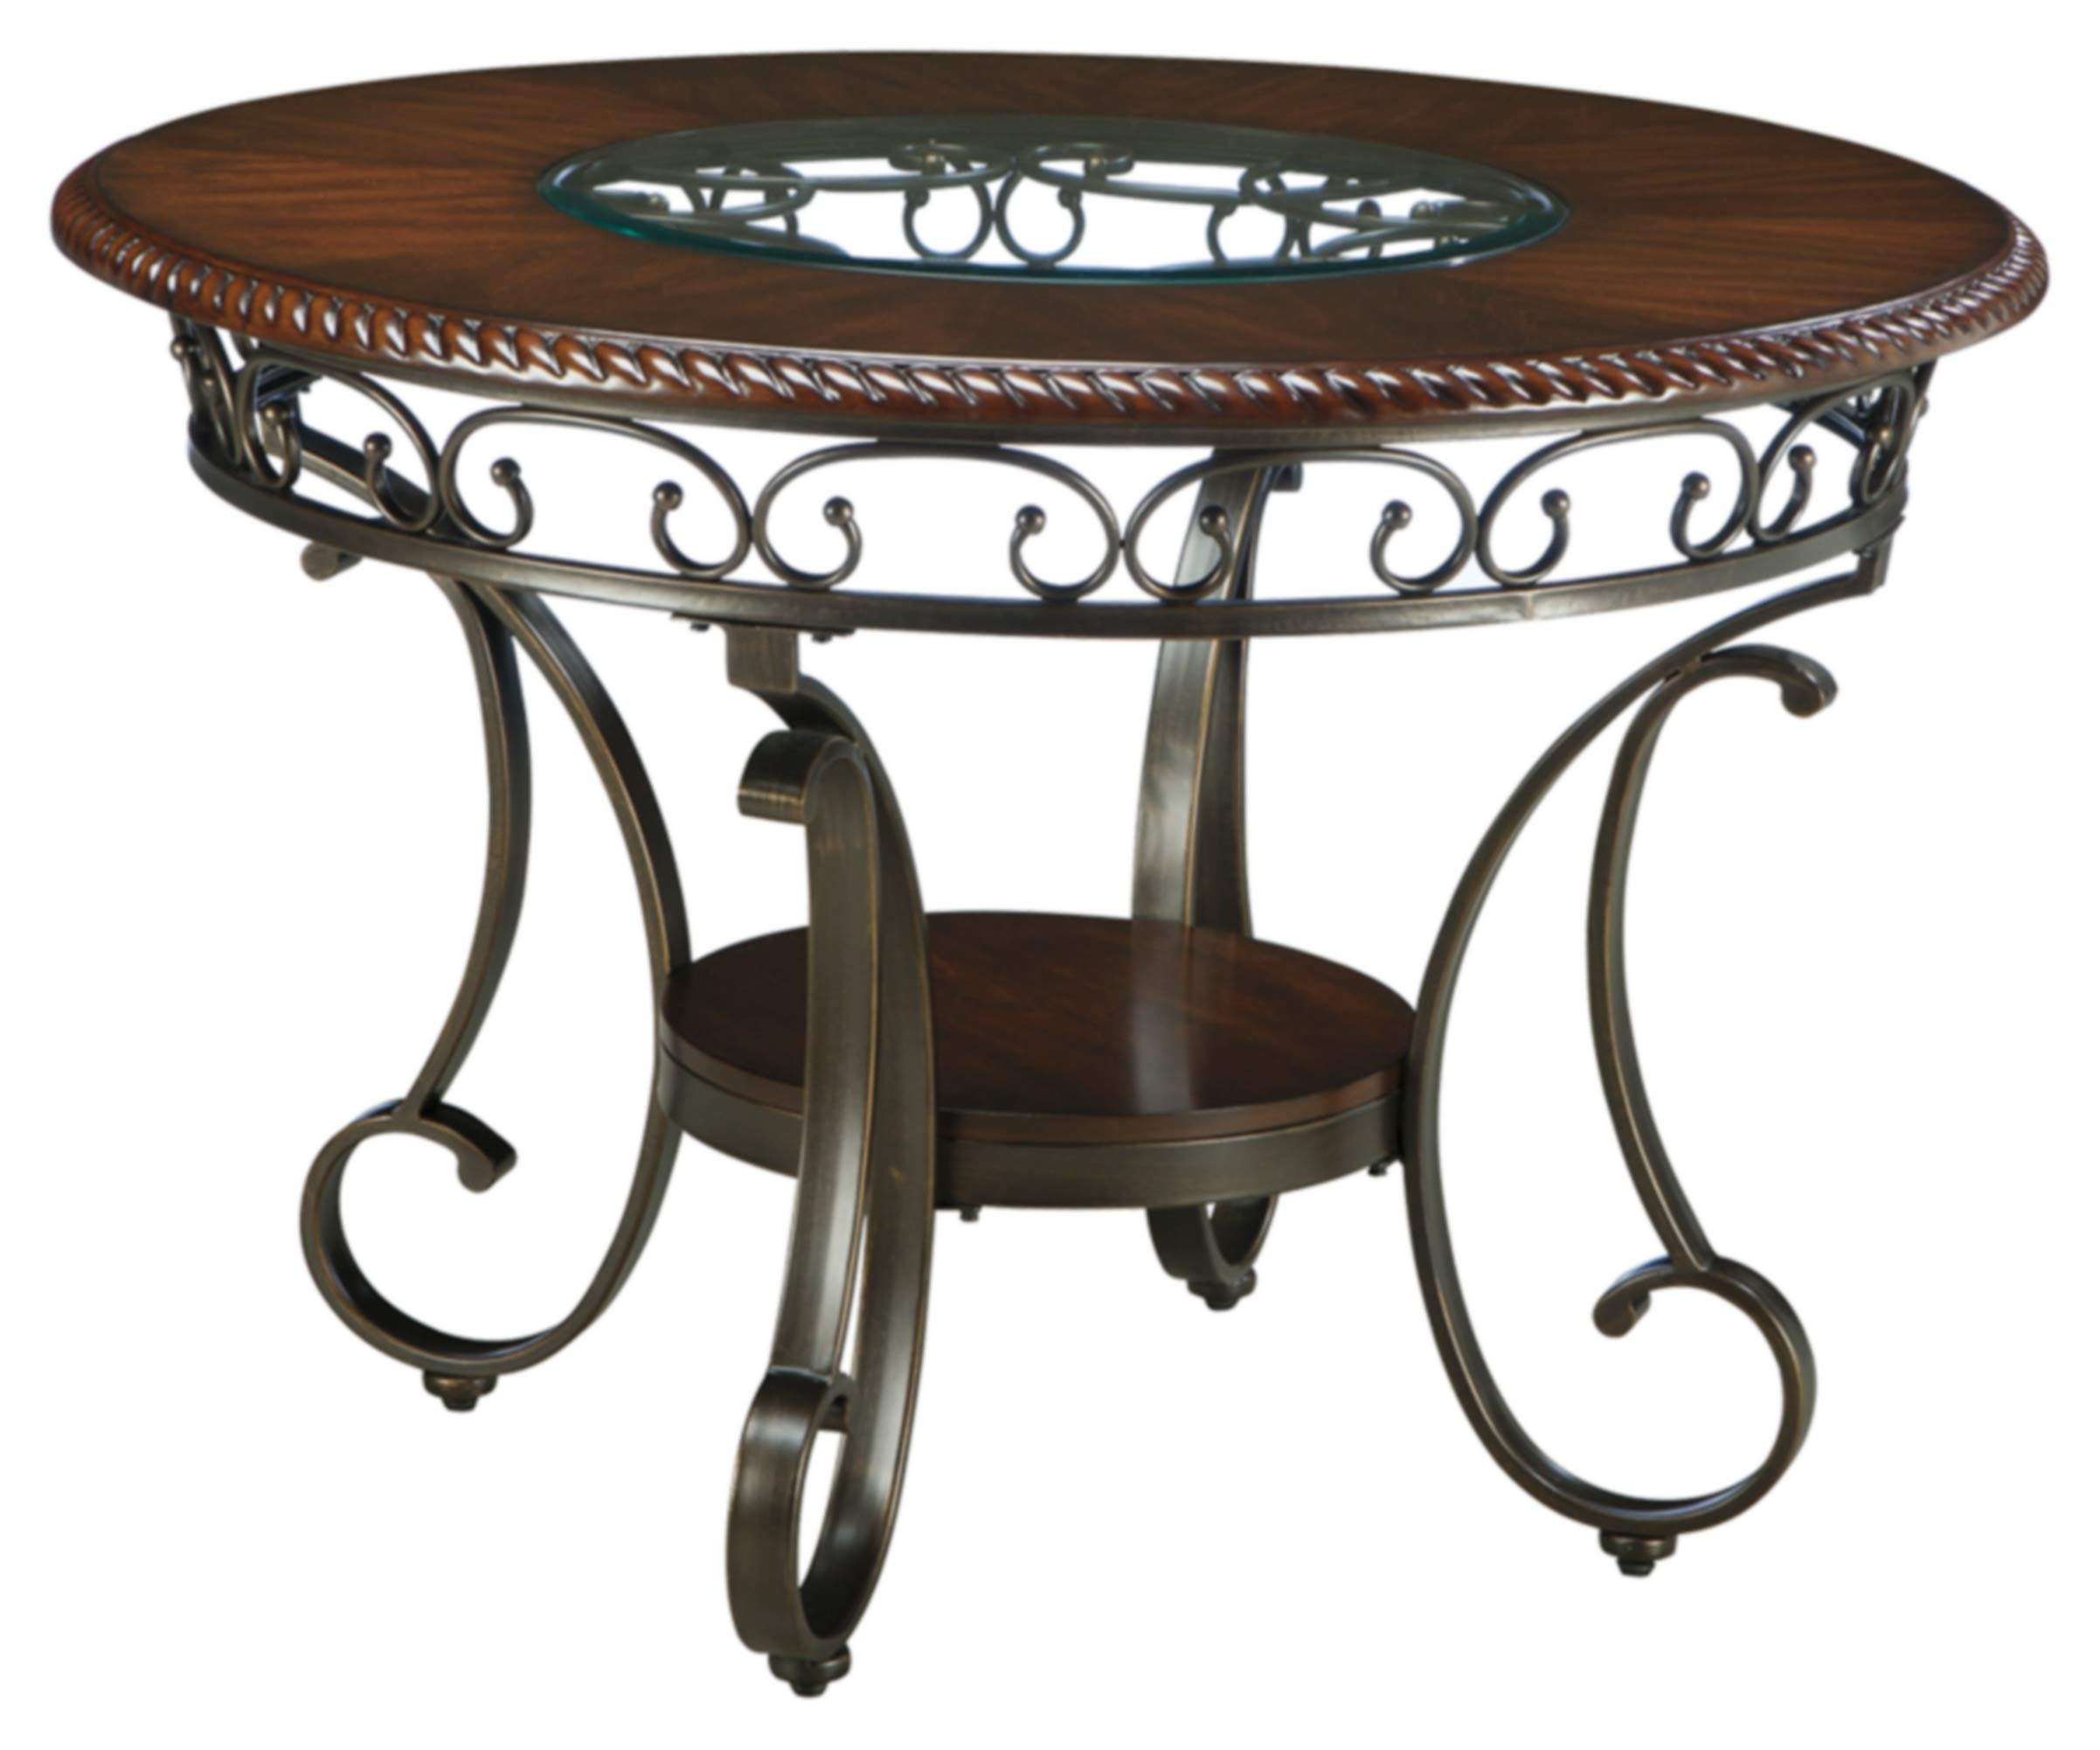 Ashley Furniture Signature Design - Glambrey Dining Room Table - Round - Brown by Signature Design by Ashley